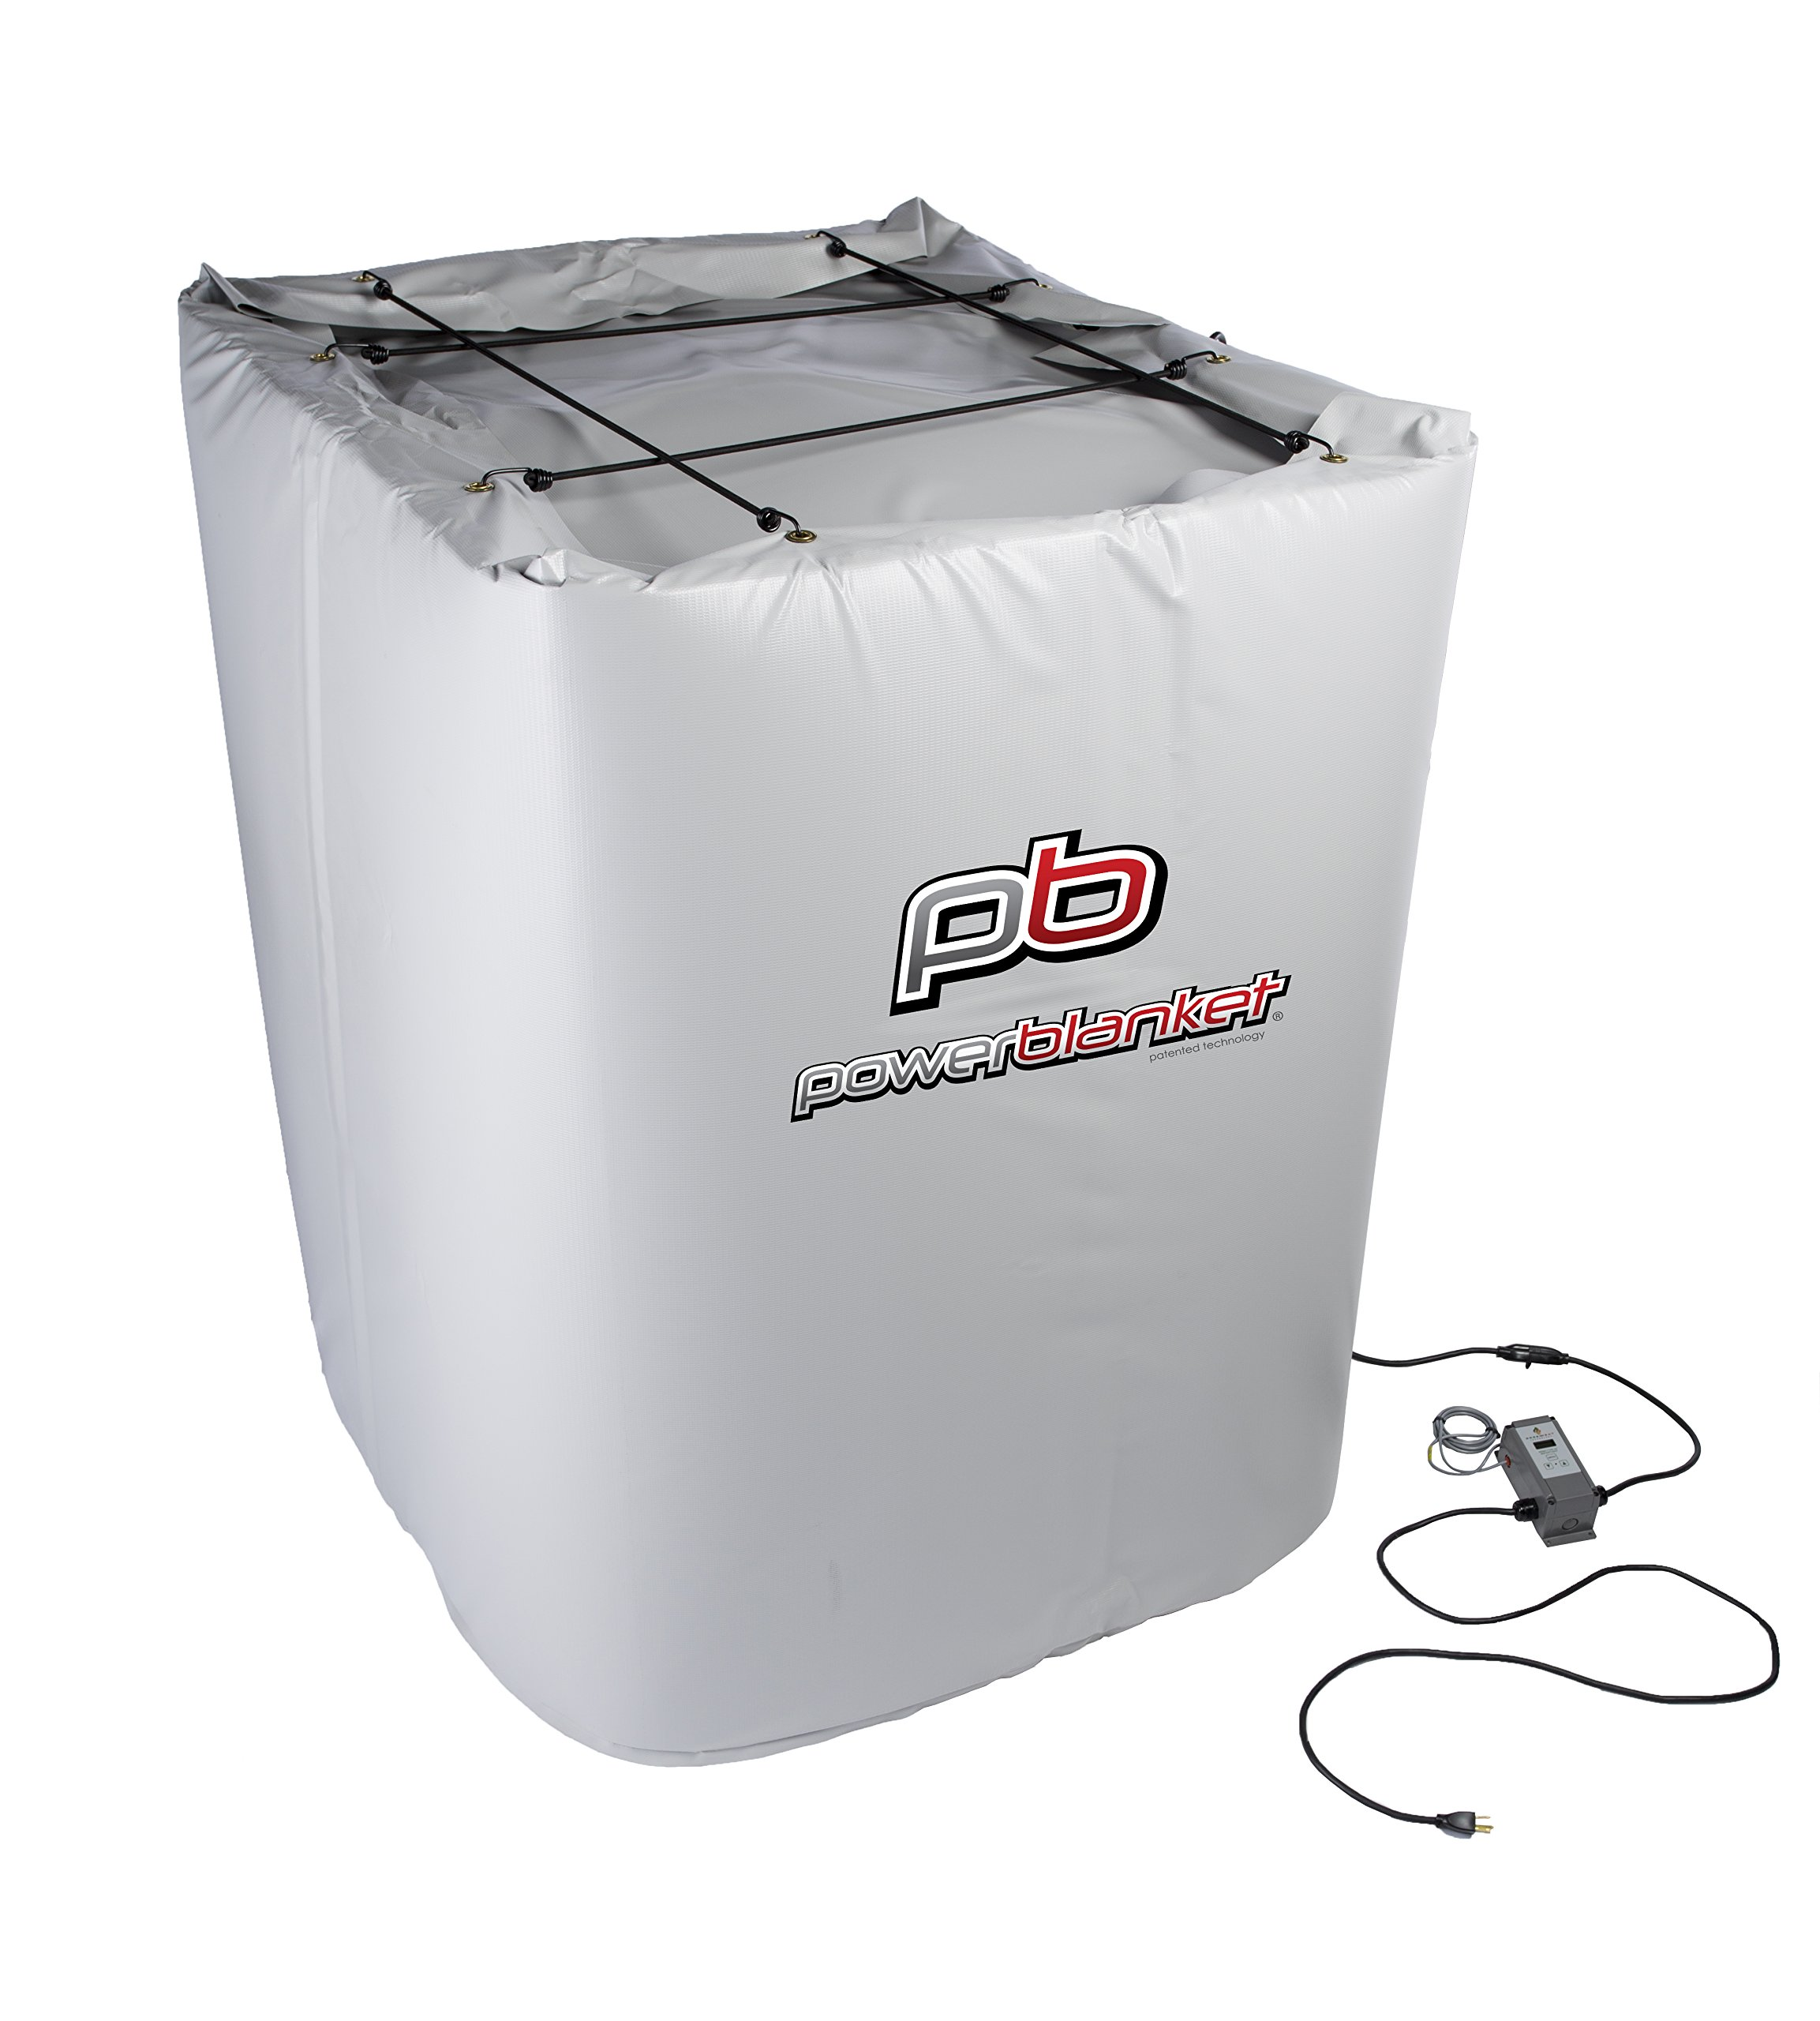 Powerblanket Xtreme TH275G Insulated IBC Storage Tote Heater with Adjustable Thermostat Controller, Rated down to -40 °F, Fits 275 Gallon IBC Tote's